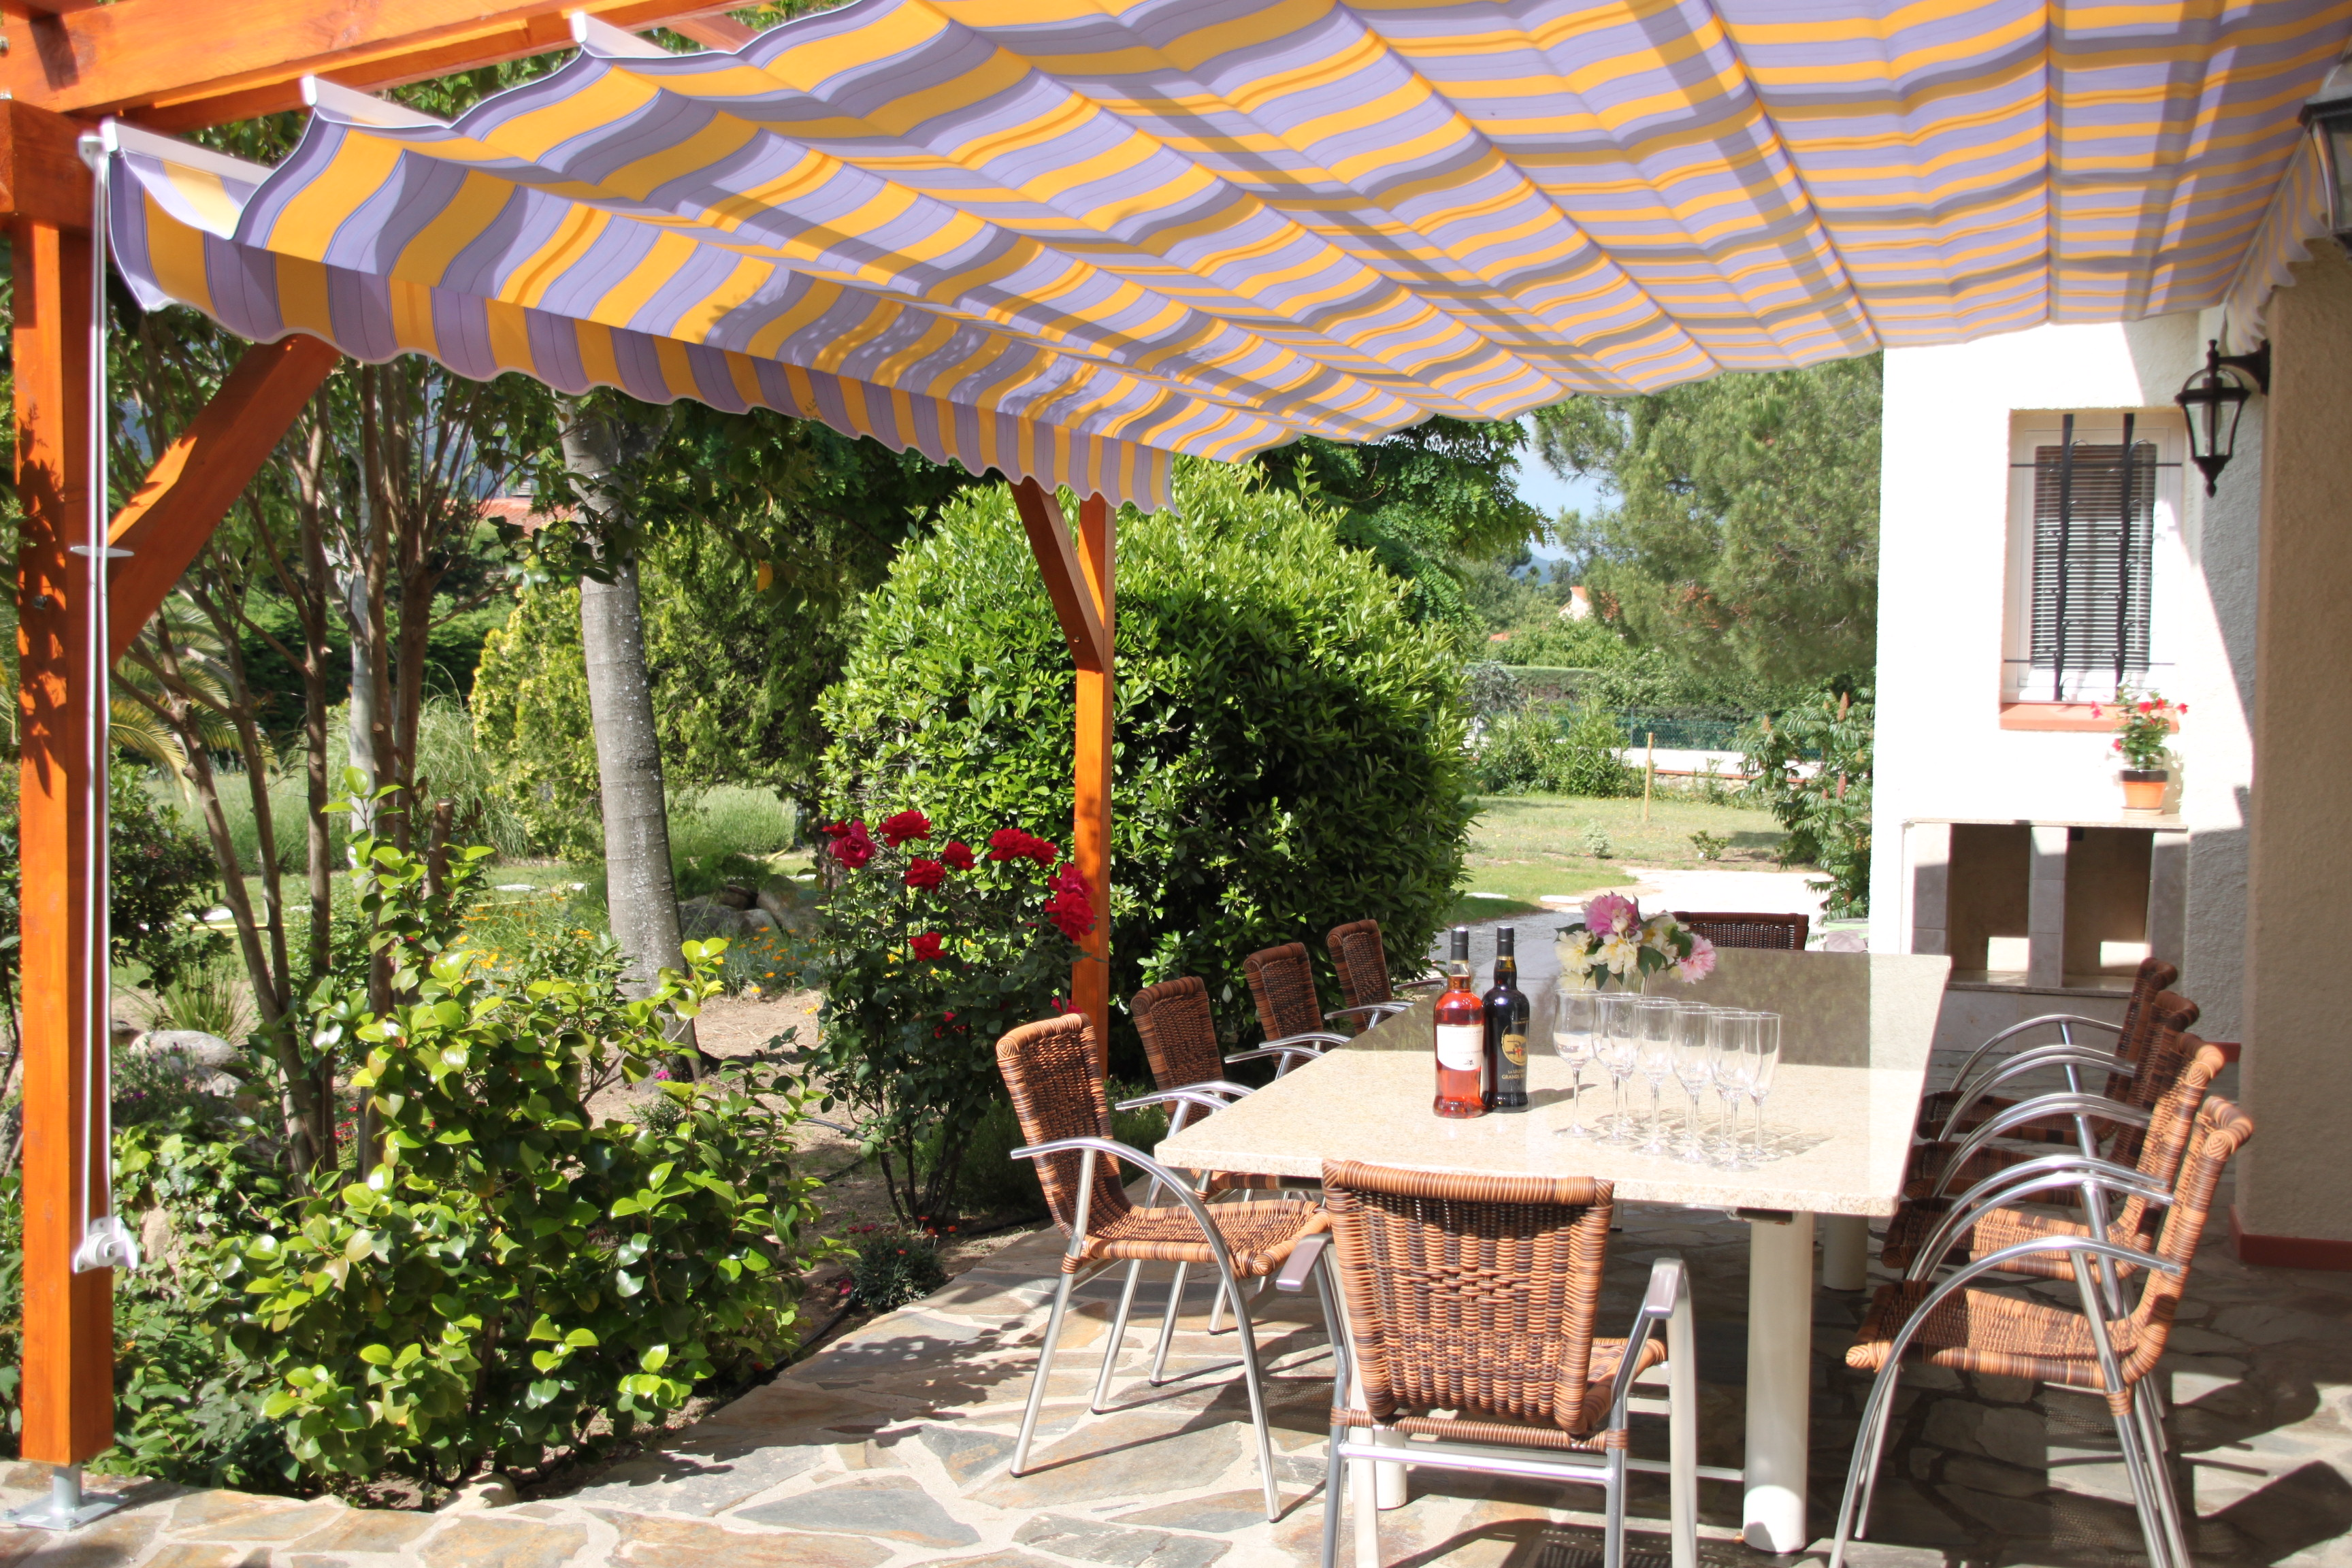 Mas lavande vacation rentals in sorede french holiday for Terrace pergola